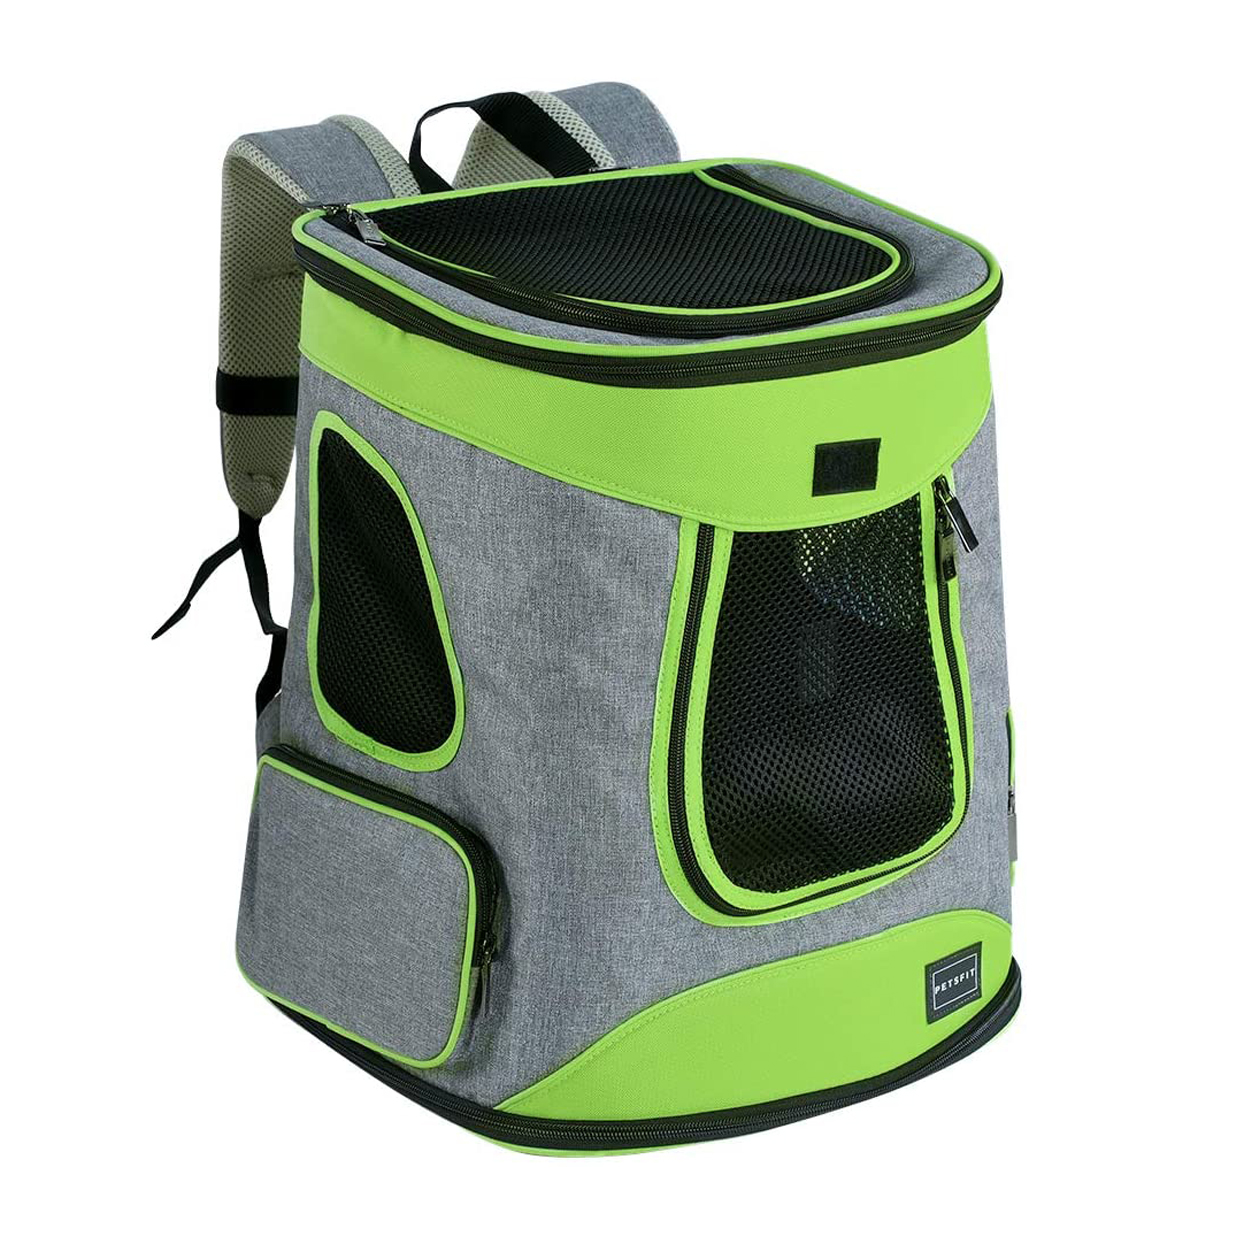 petsfit-sturdy-hiking-pet-carrier-backpack